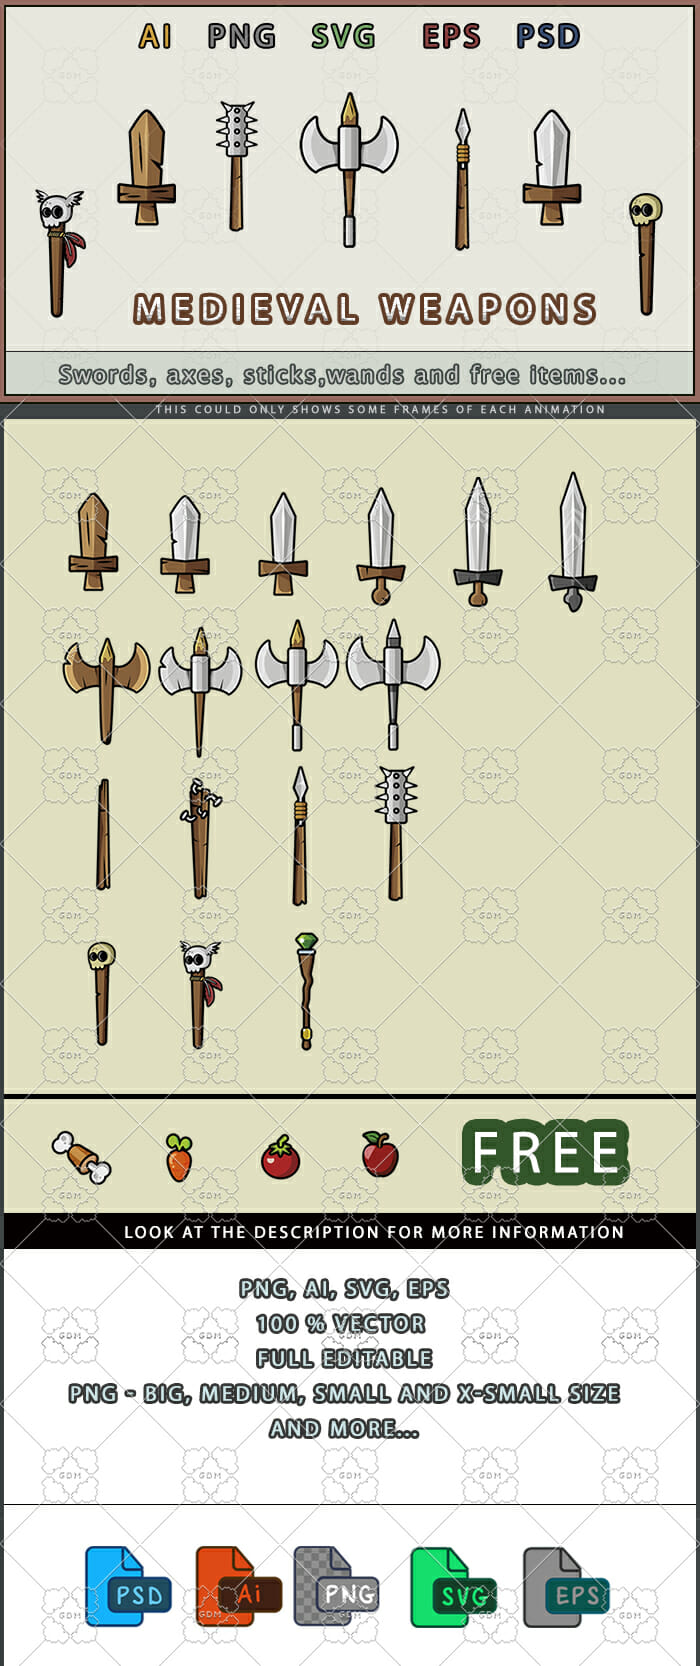 Weapons and FREE items